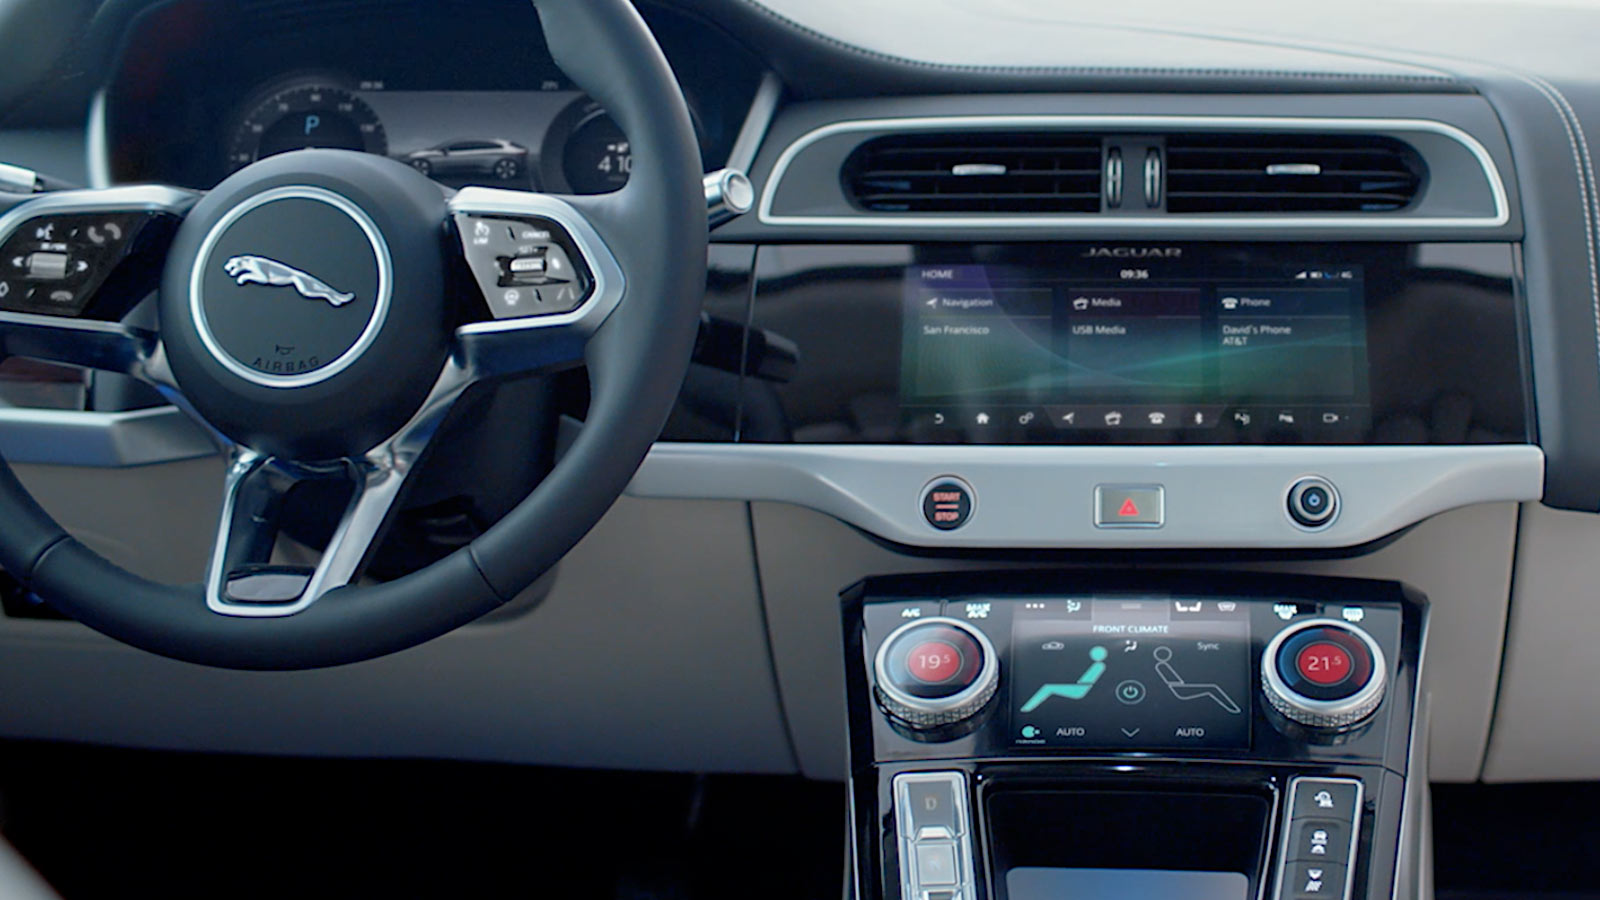 Jaguar I-Pace Dashboard And Controls.